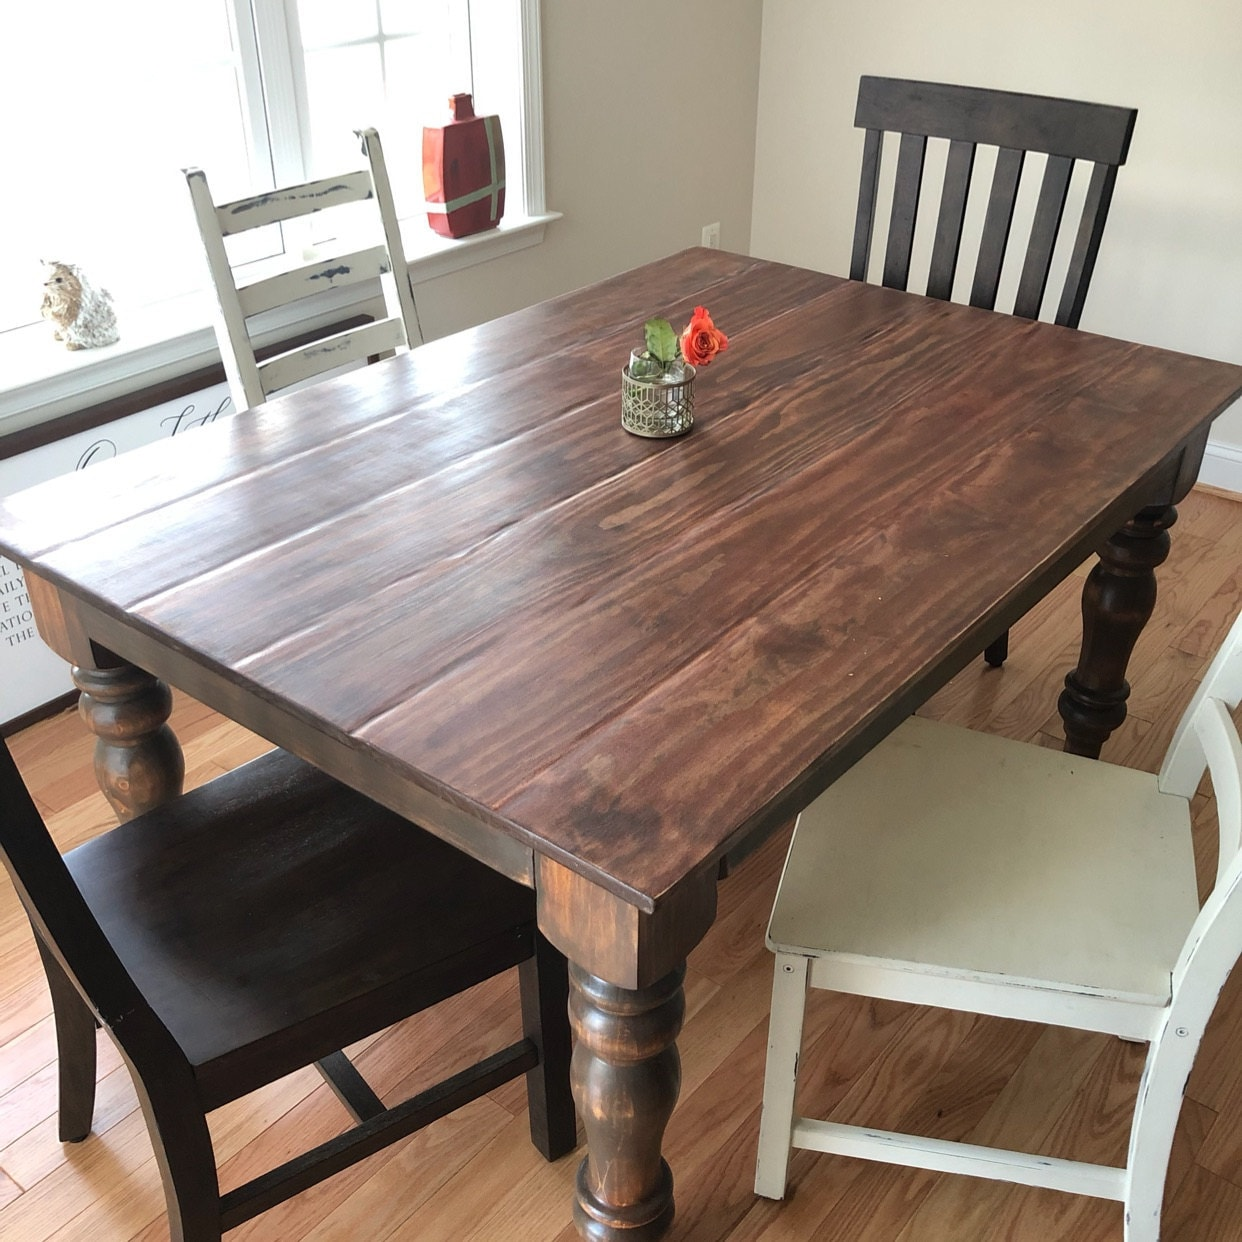 Unfinished PINE Chunky Farmhouse Table Legs, Set of 4